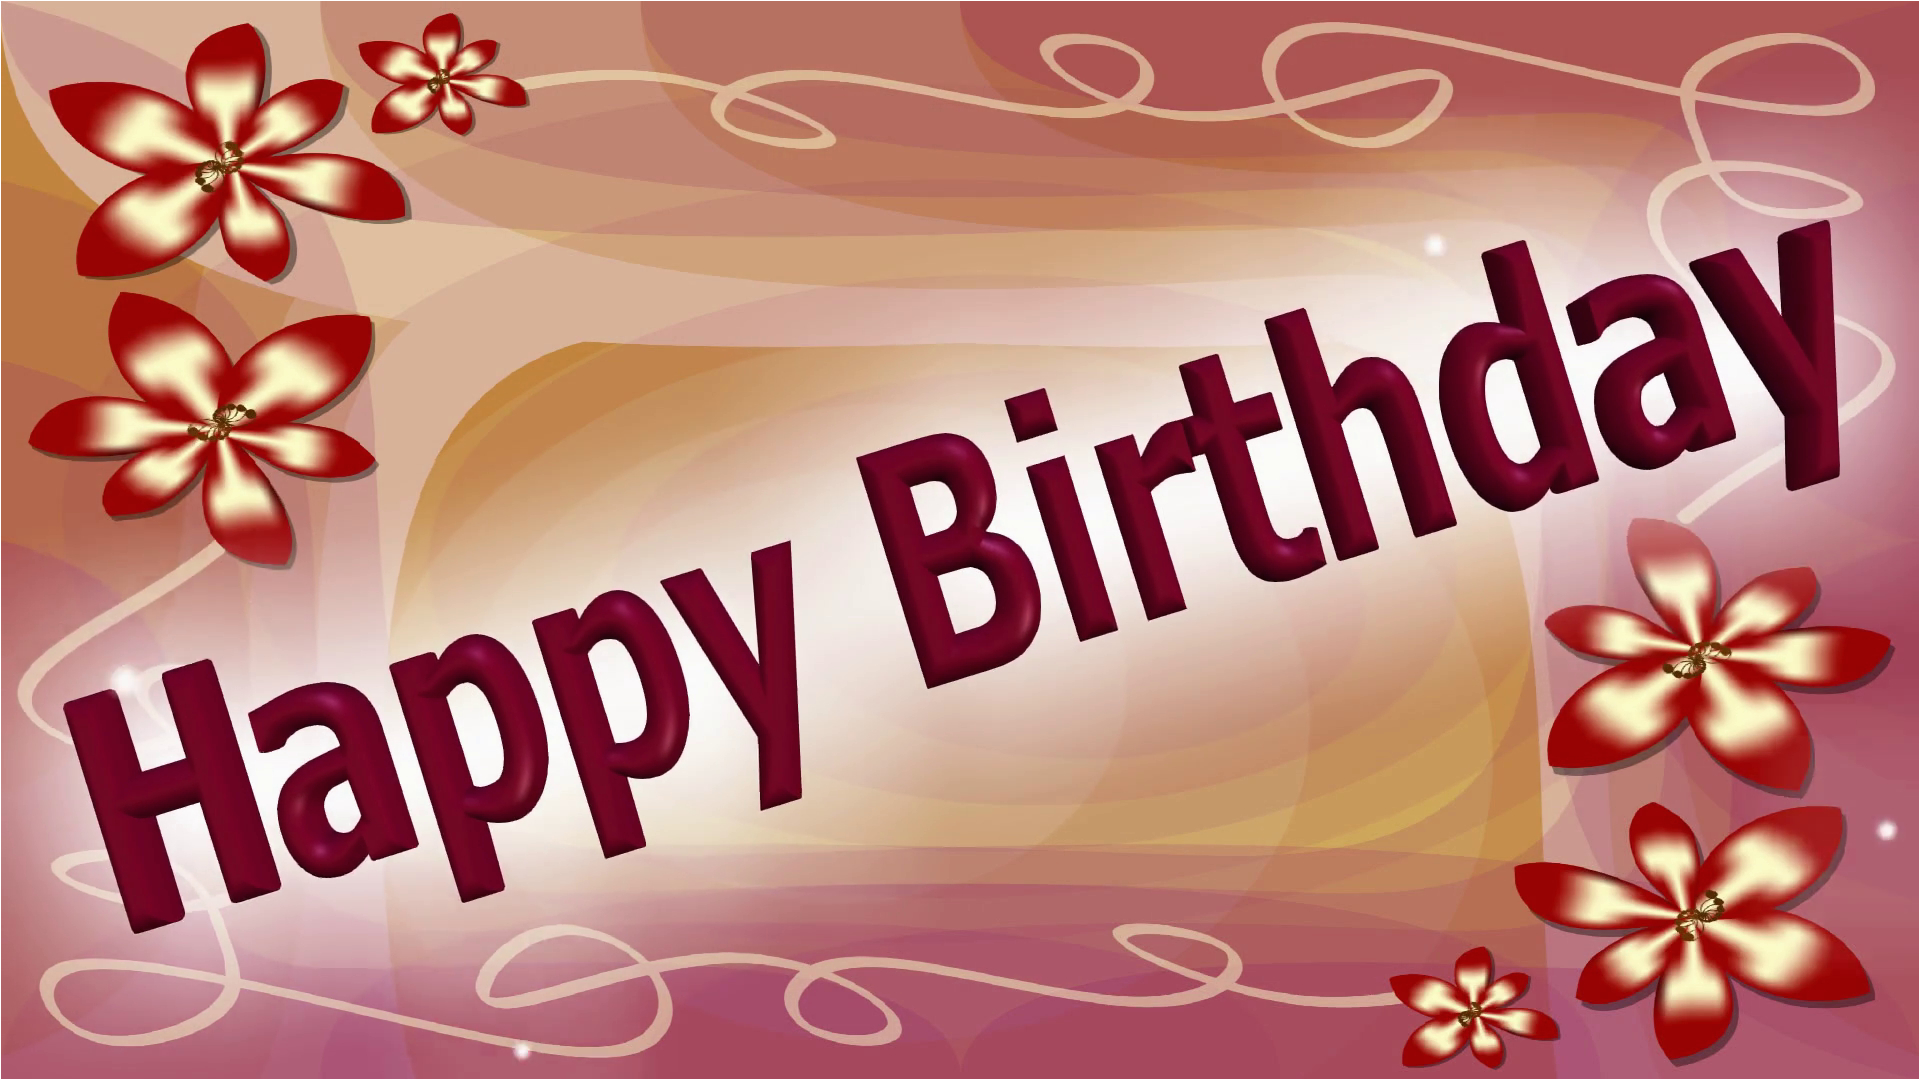 happy birthday banner with dancing and leaping letters on elegant pink abstract background with dark red flowers silver sparkle falling slowly over area buagh28mwj3ocb905